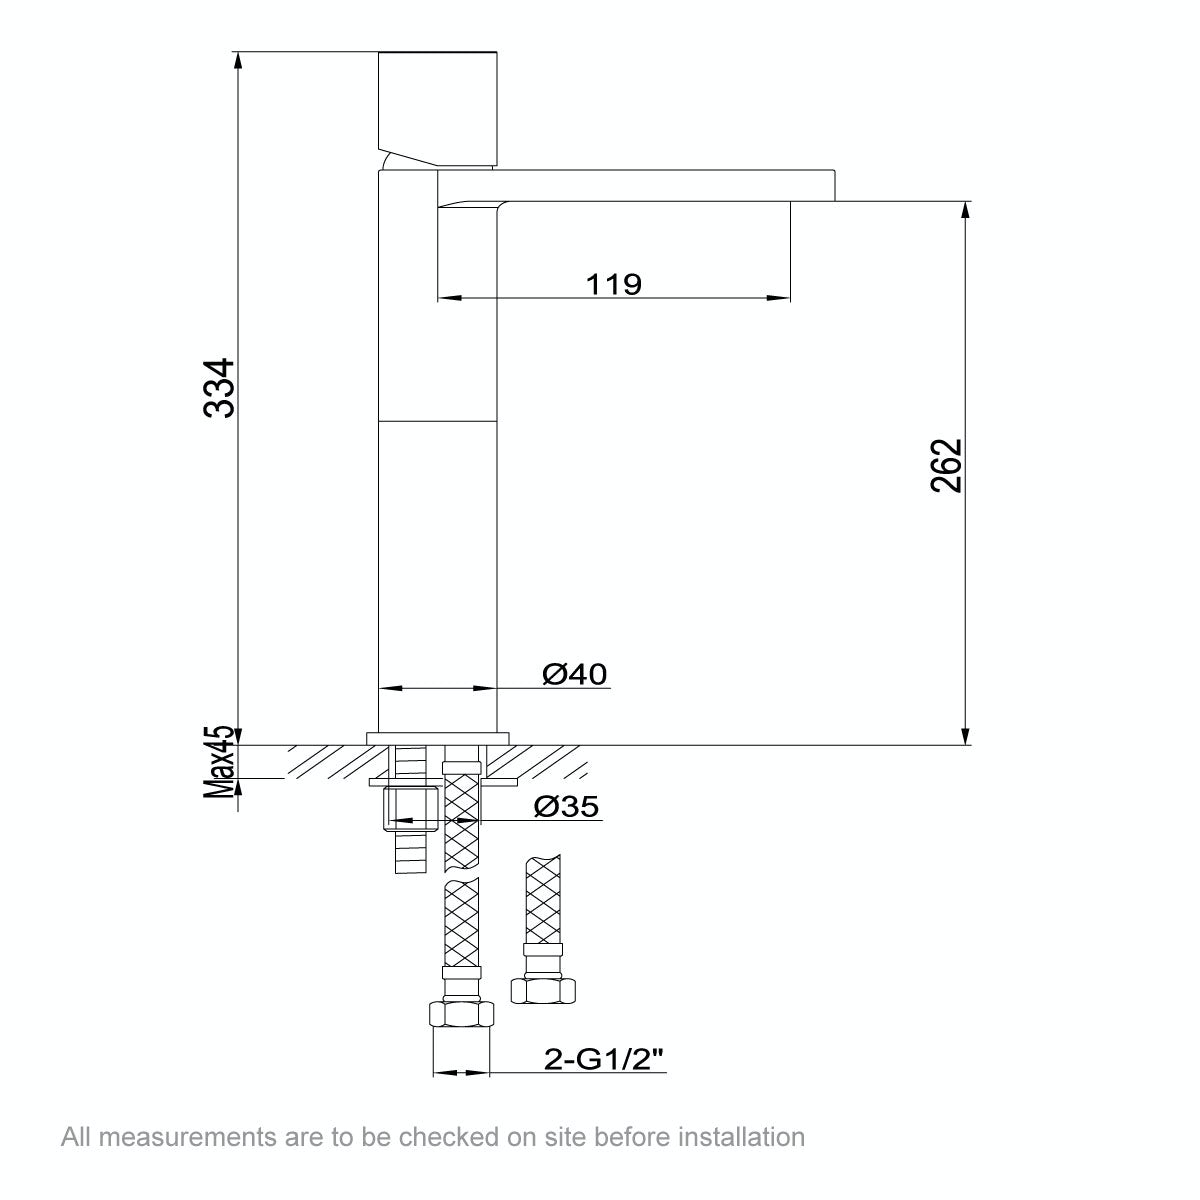 Dimensions for Mode Heath high rise basin mixer tap